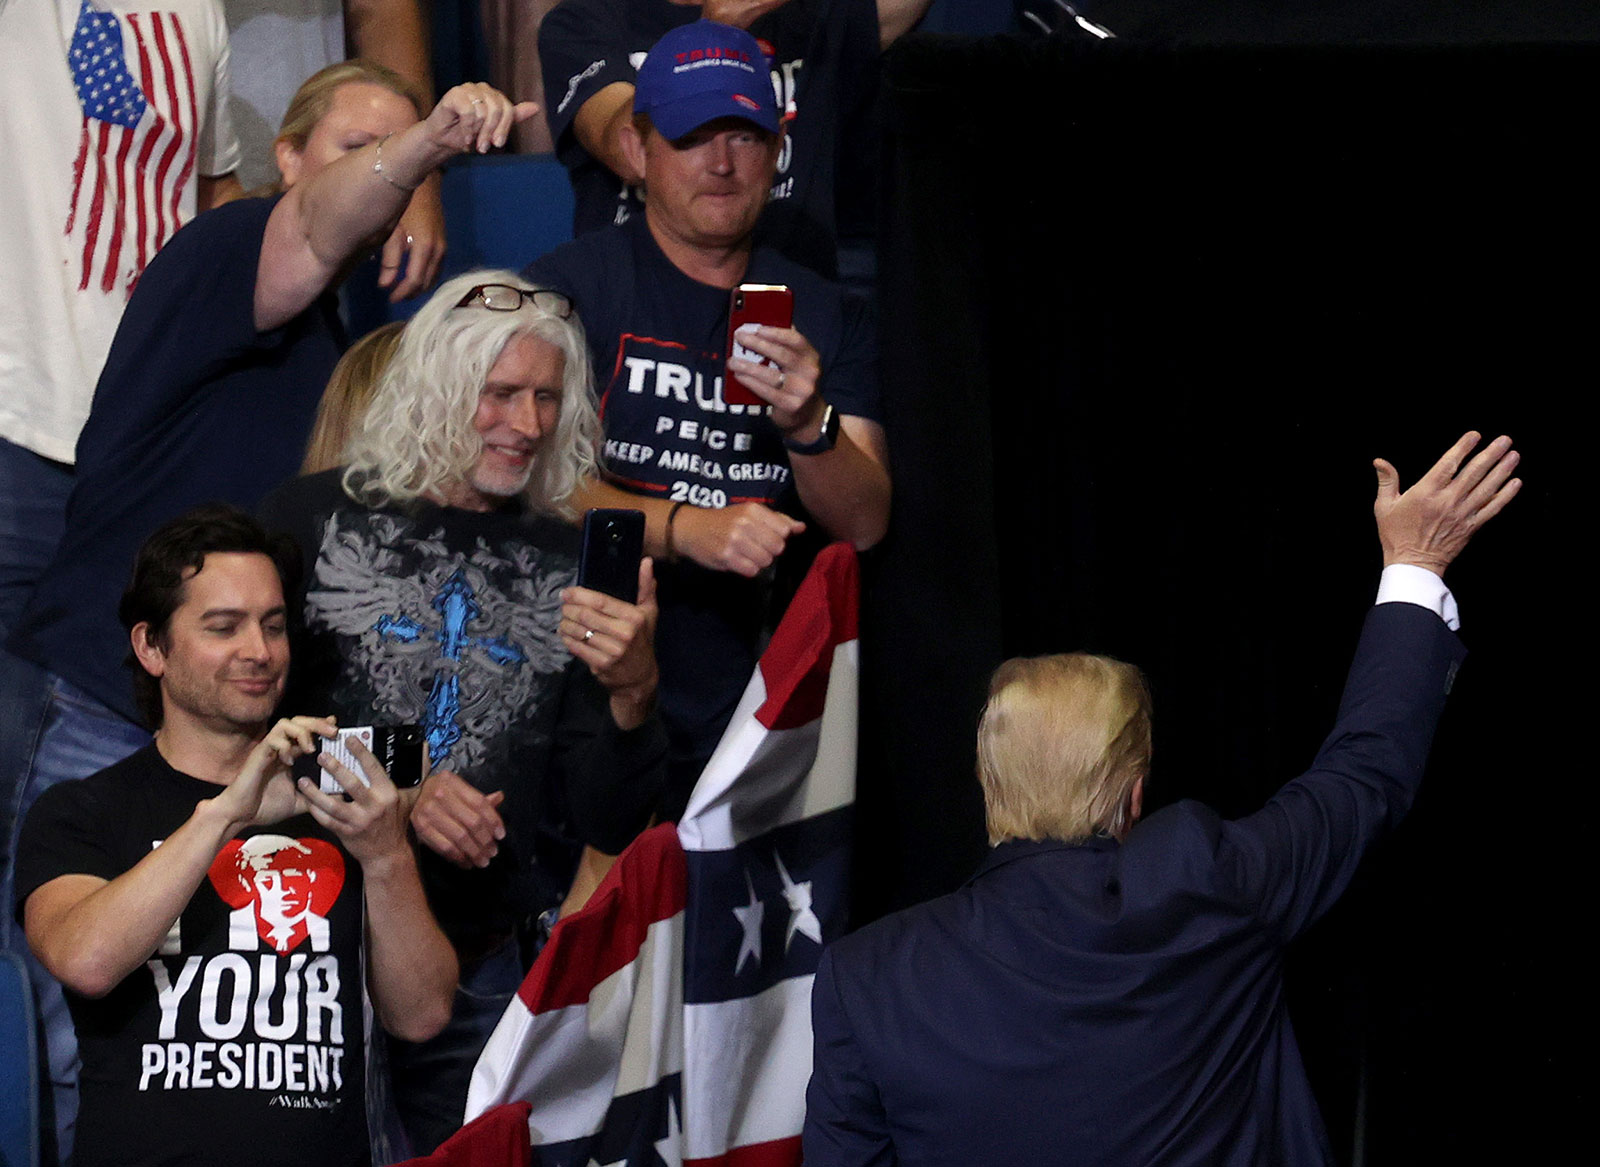 Win McNamee/Getty Images